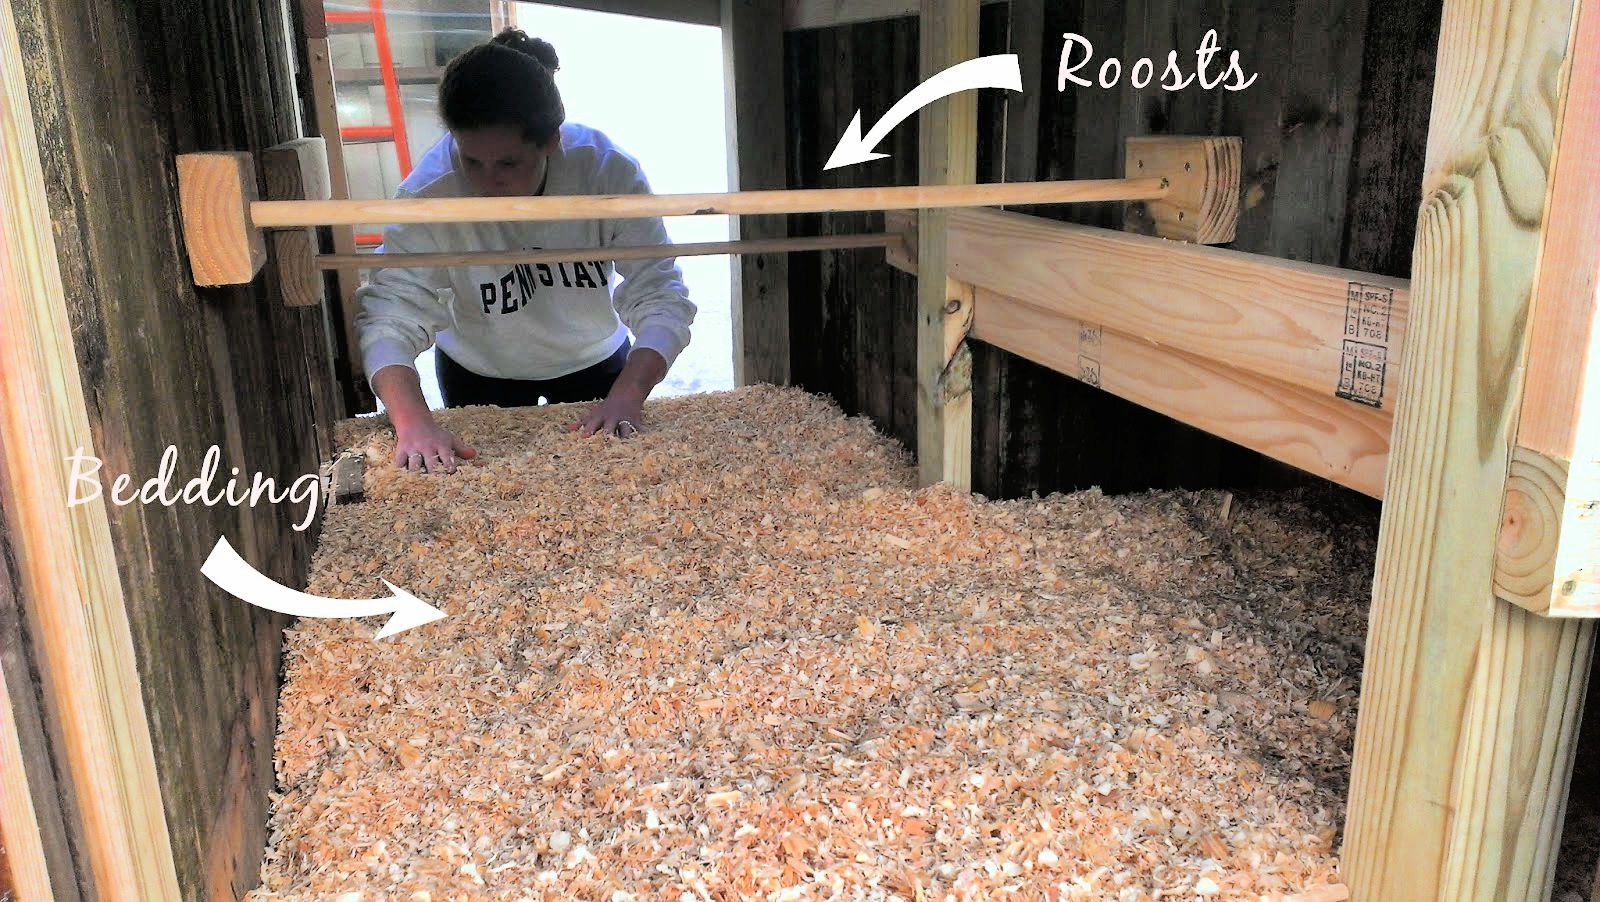 two roosts for sleeping and luxurious pine shavings for bedding